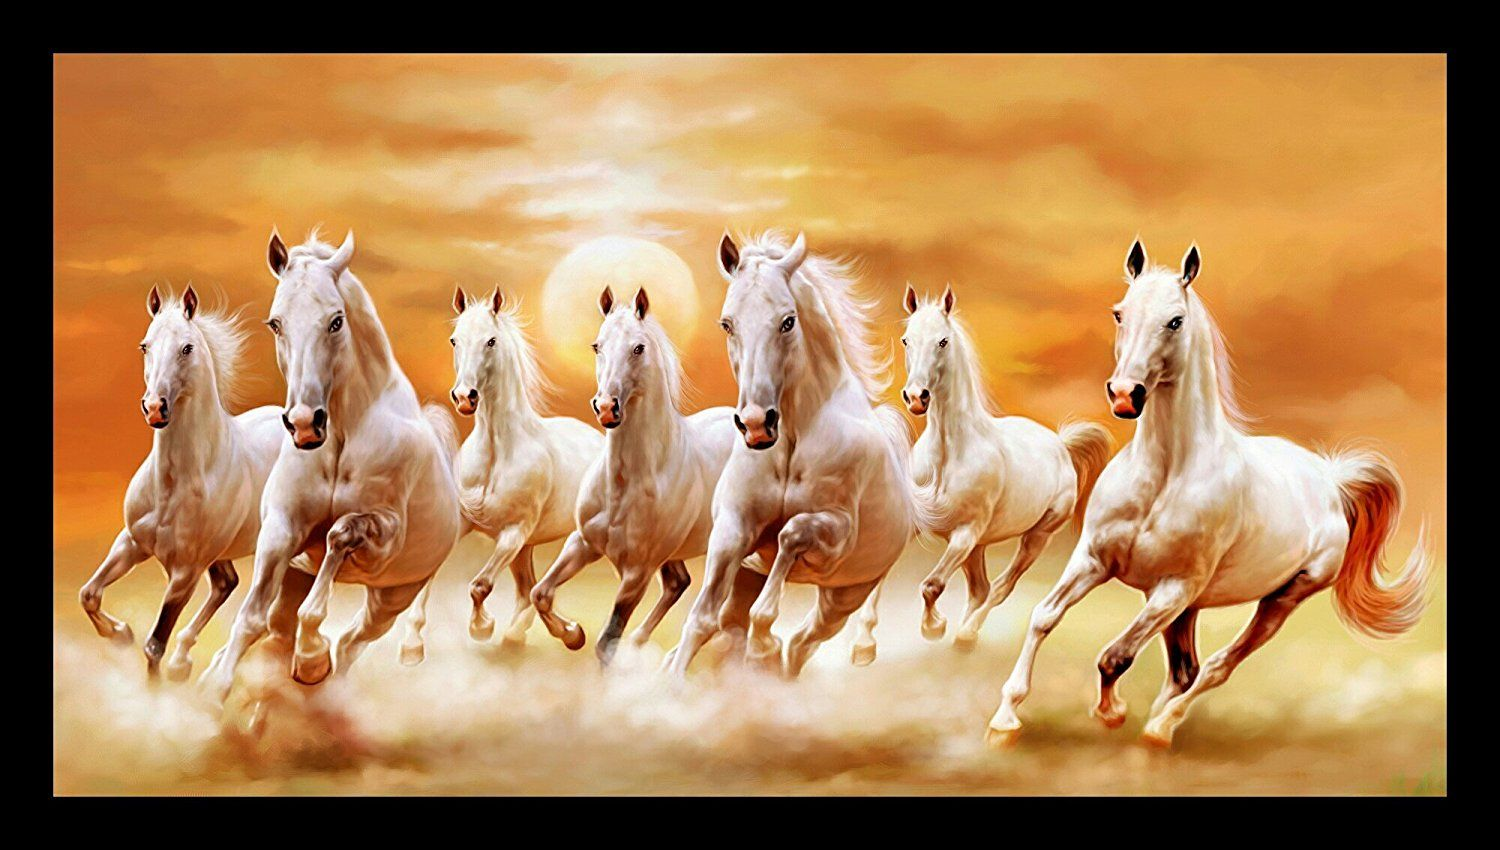 Download Seven Horses Hd Wallpaper White Seven Horses Painting And Search More Hd Desktop And Mobi Seven Horses Painting Horse Wallpaper White Horse Painting